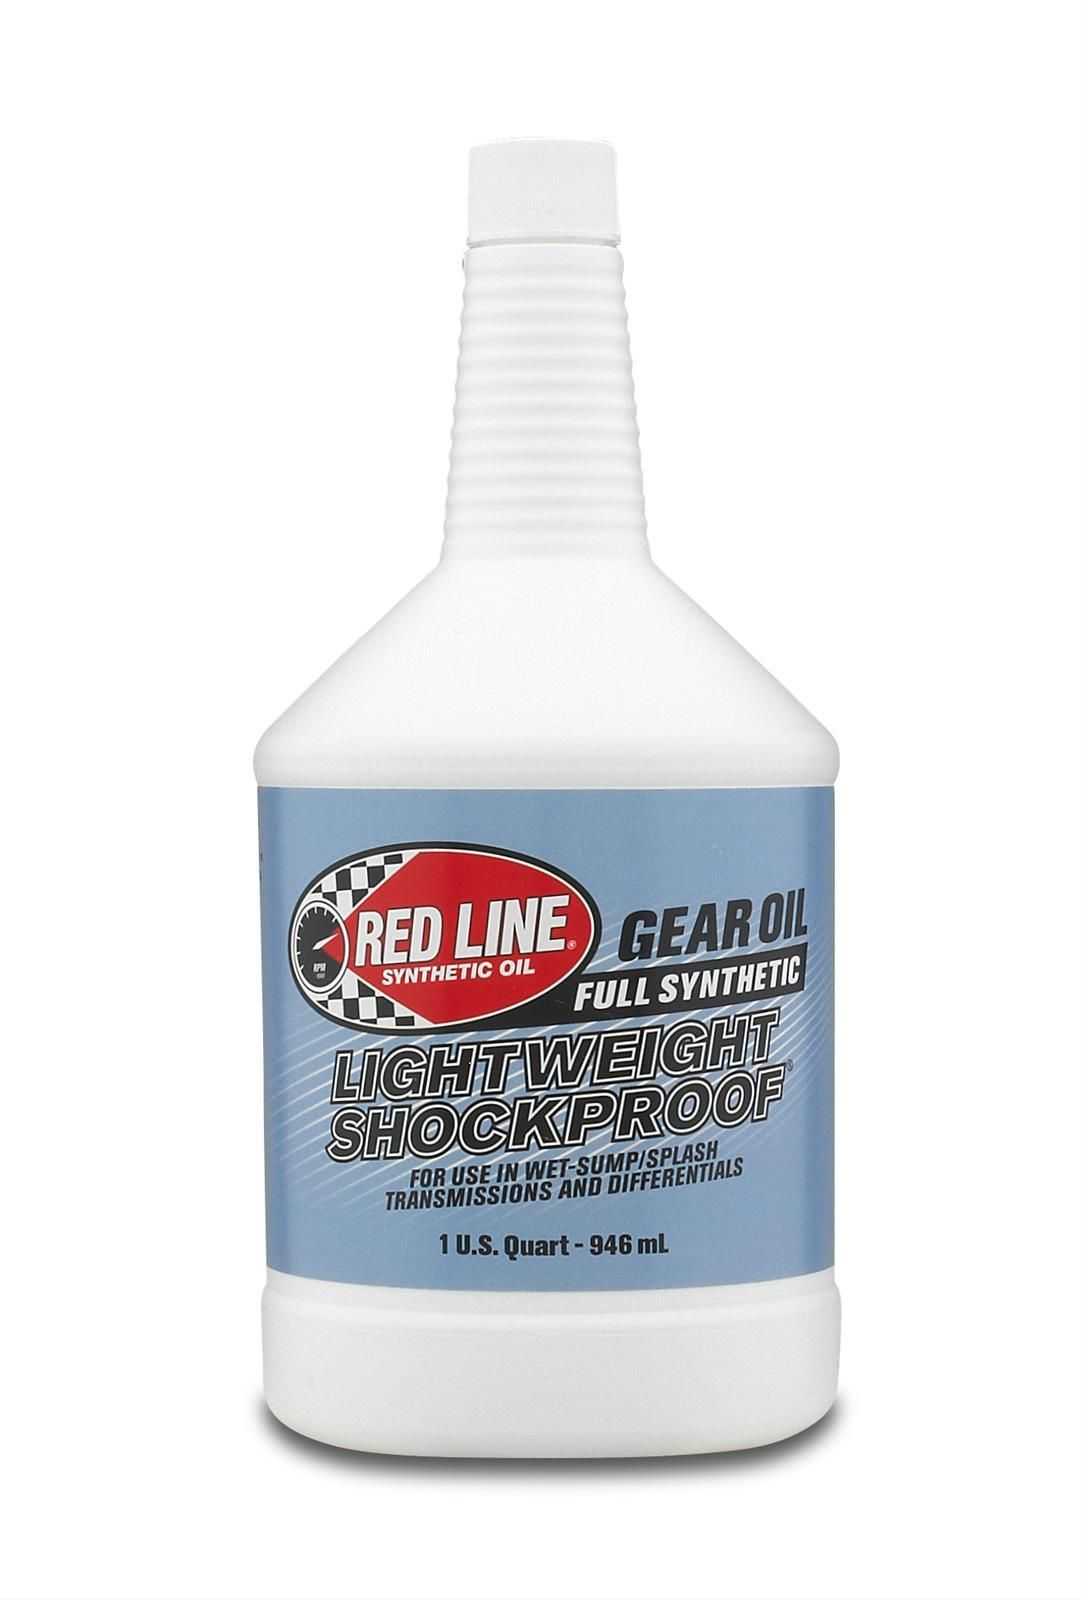 Red Line Lightweight Shockproof Gear Oil Oils Synthetic Oil Mitsubishi Evolution